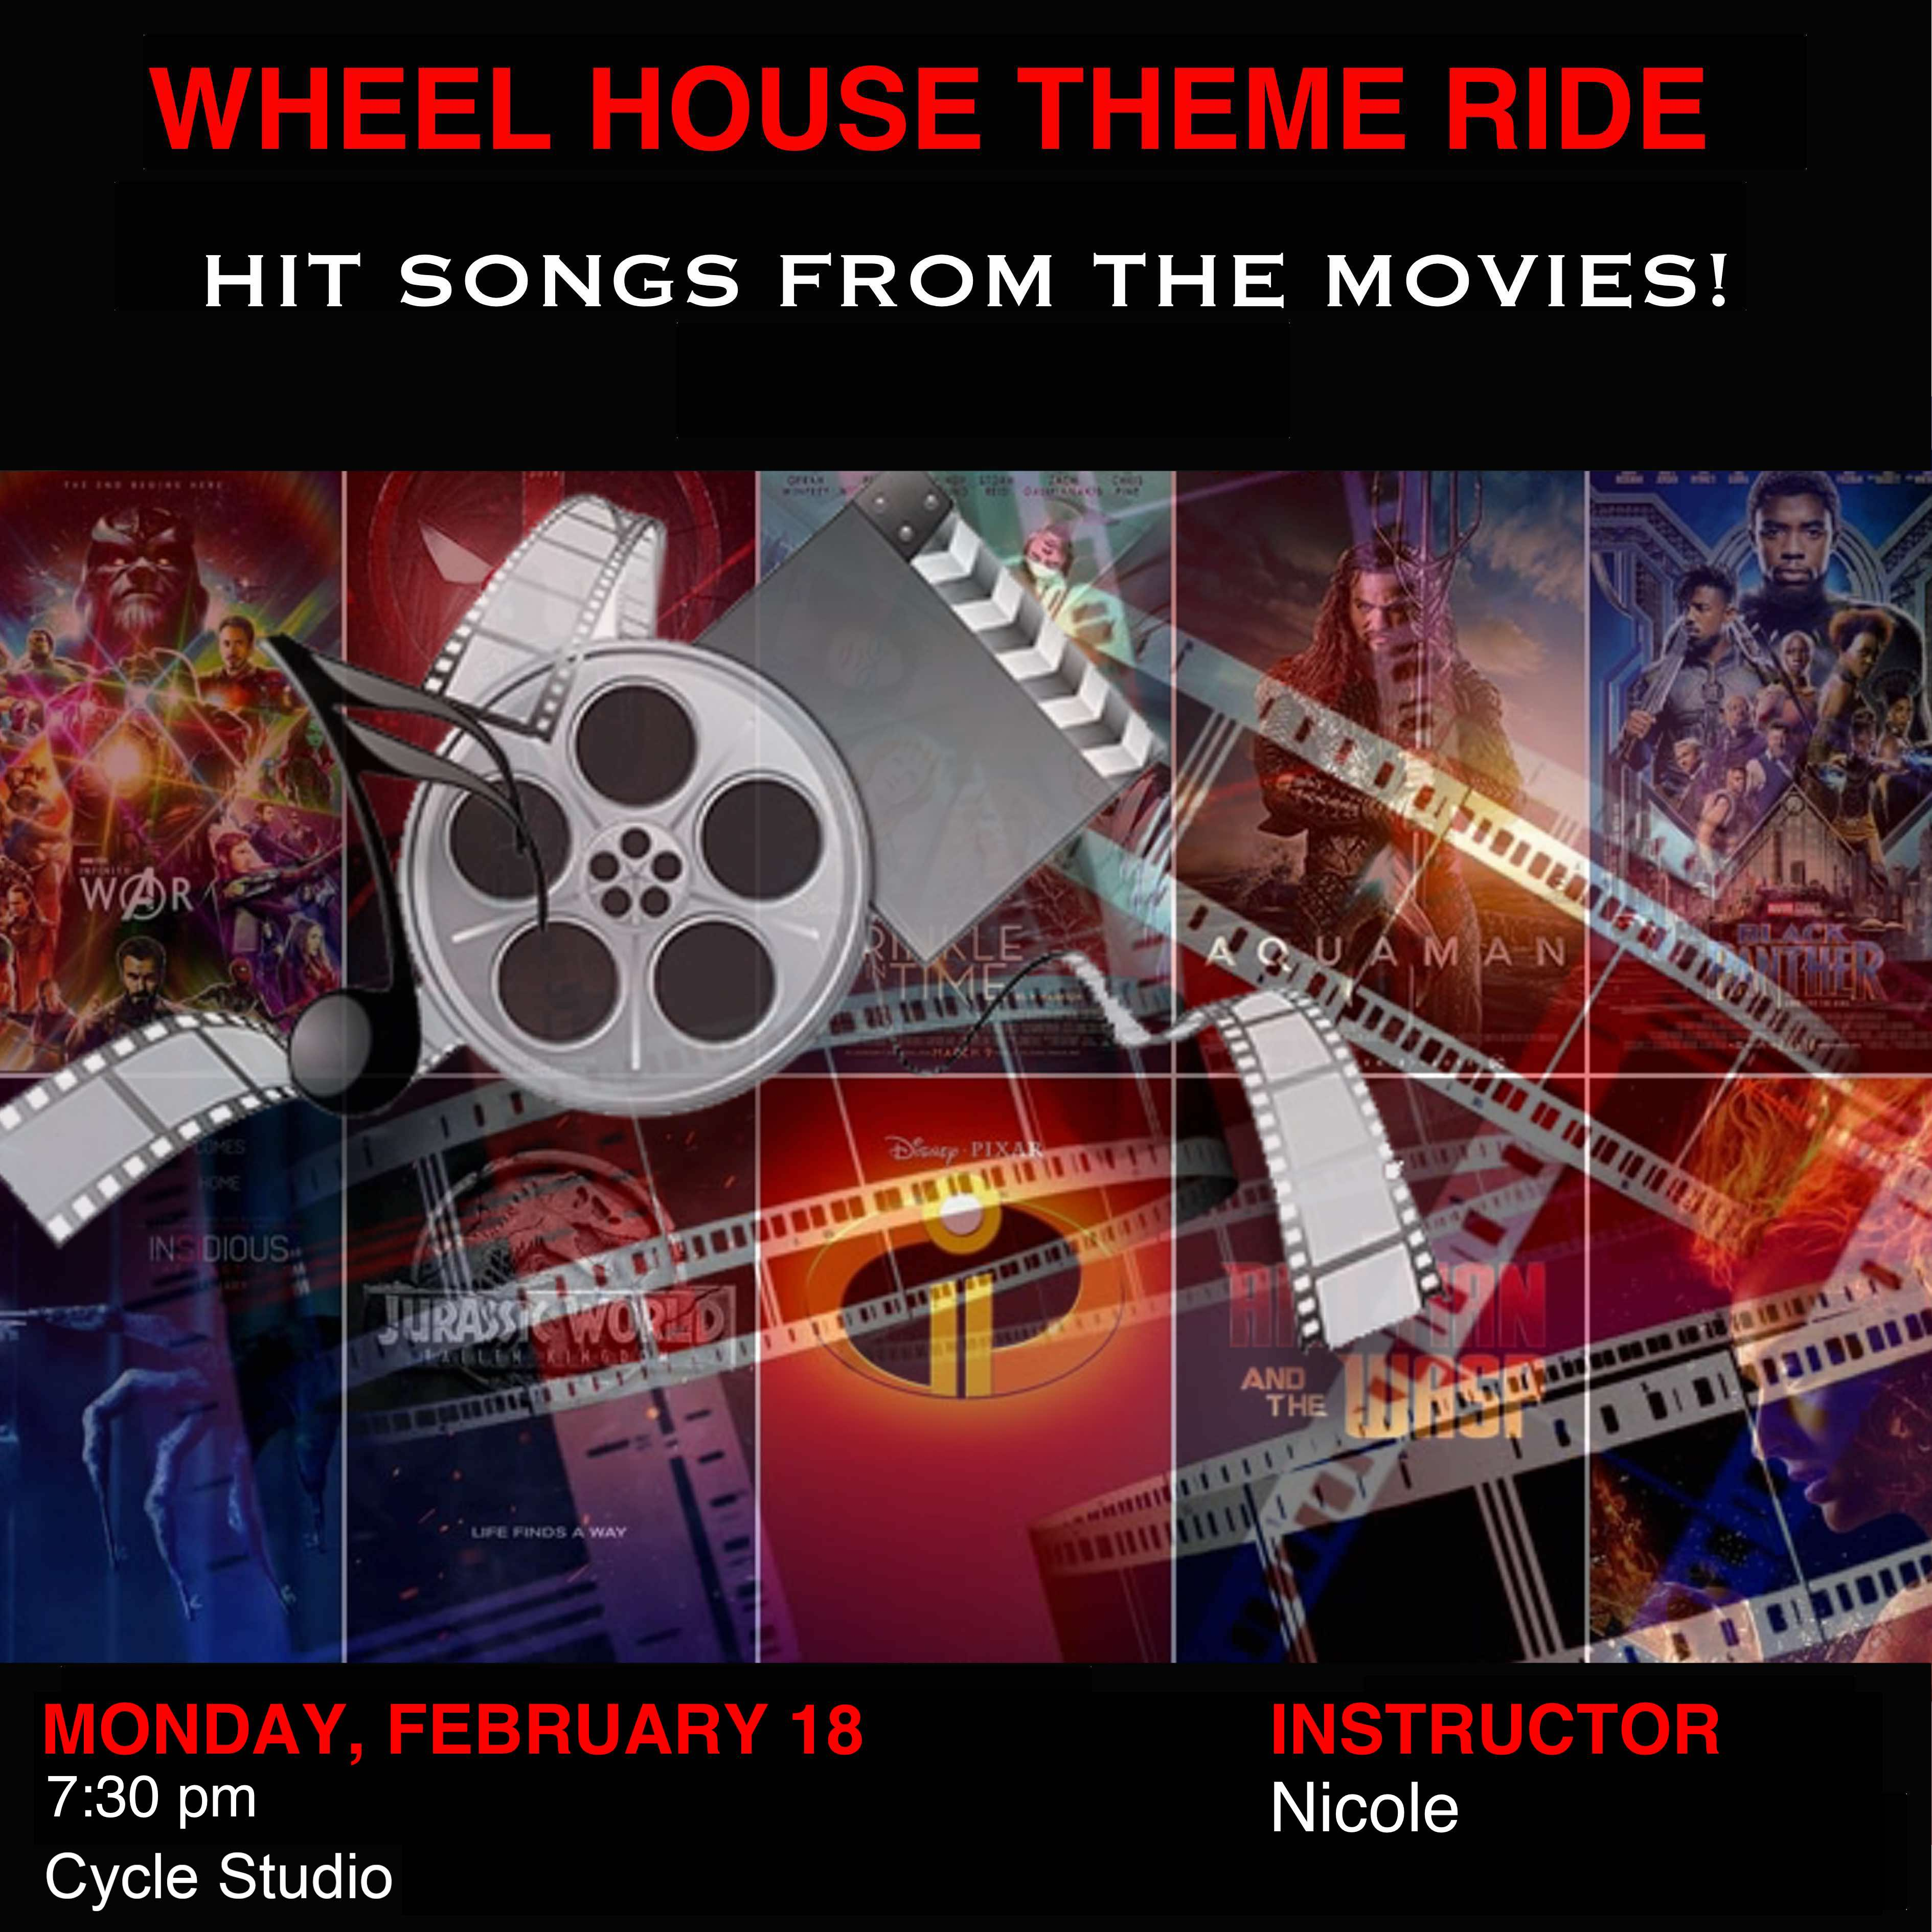 Hit Songs From The Movies!